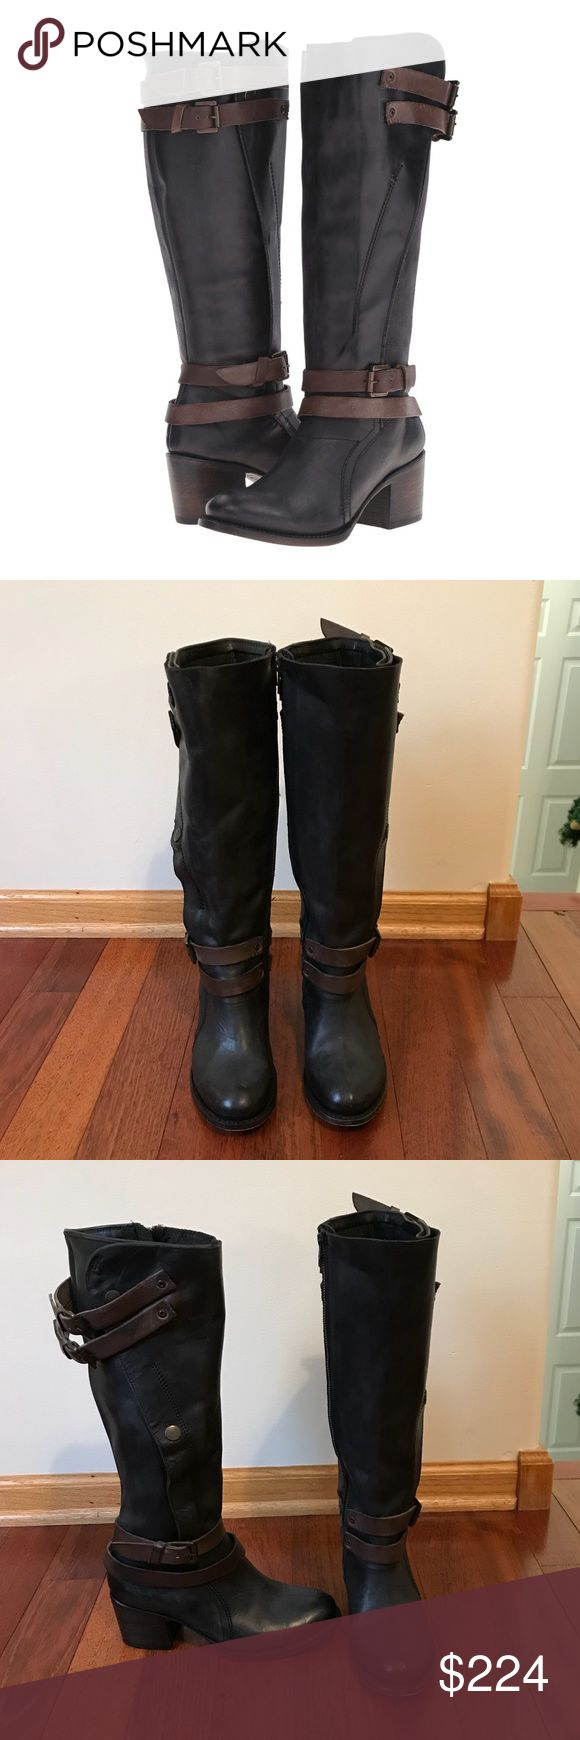 I just added this listing on Poshmark: Freebird Clive Boot Size 7. #shopmycloset #poshmark #fashion #shopping #style #forsale #Freebird by Steven #Shoes